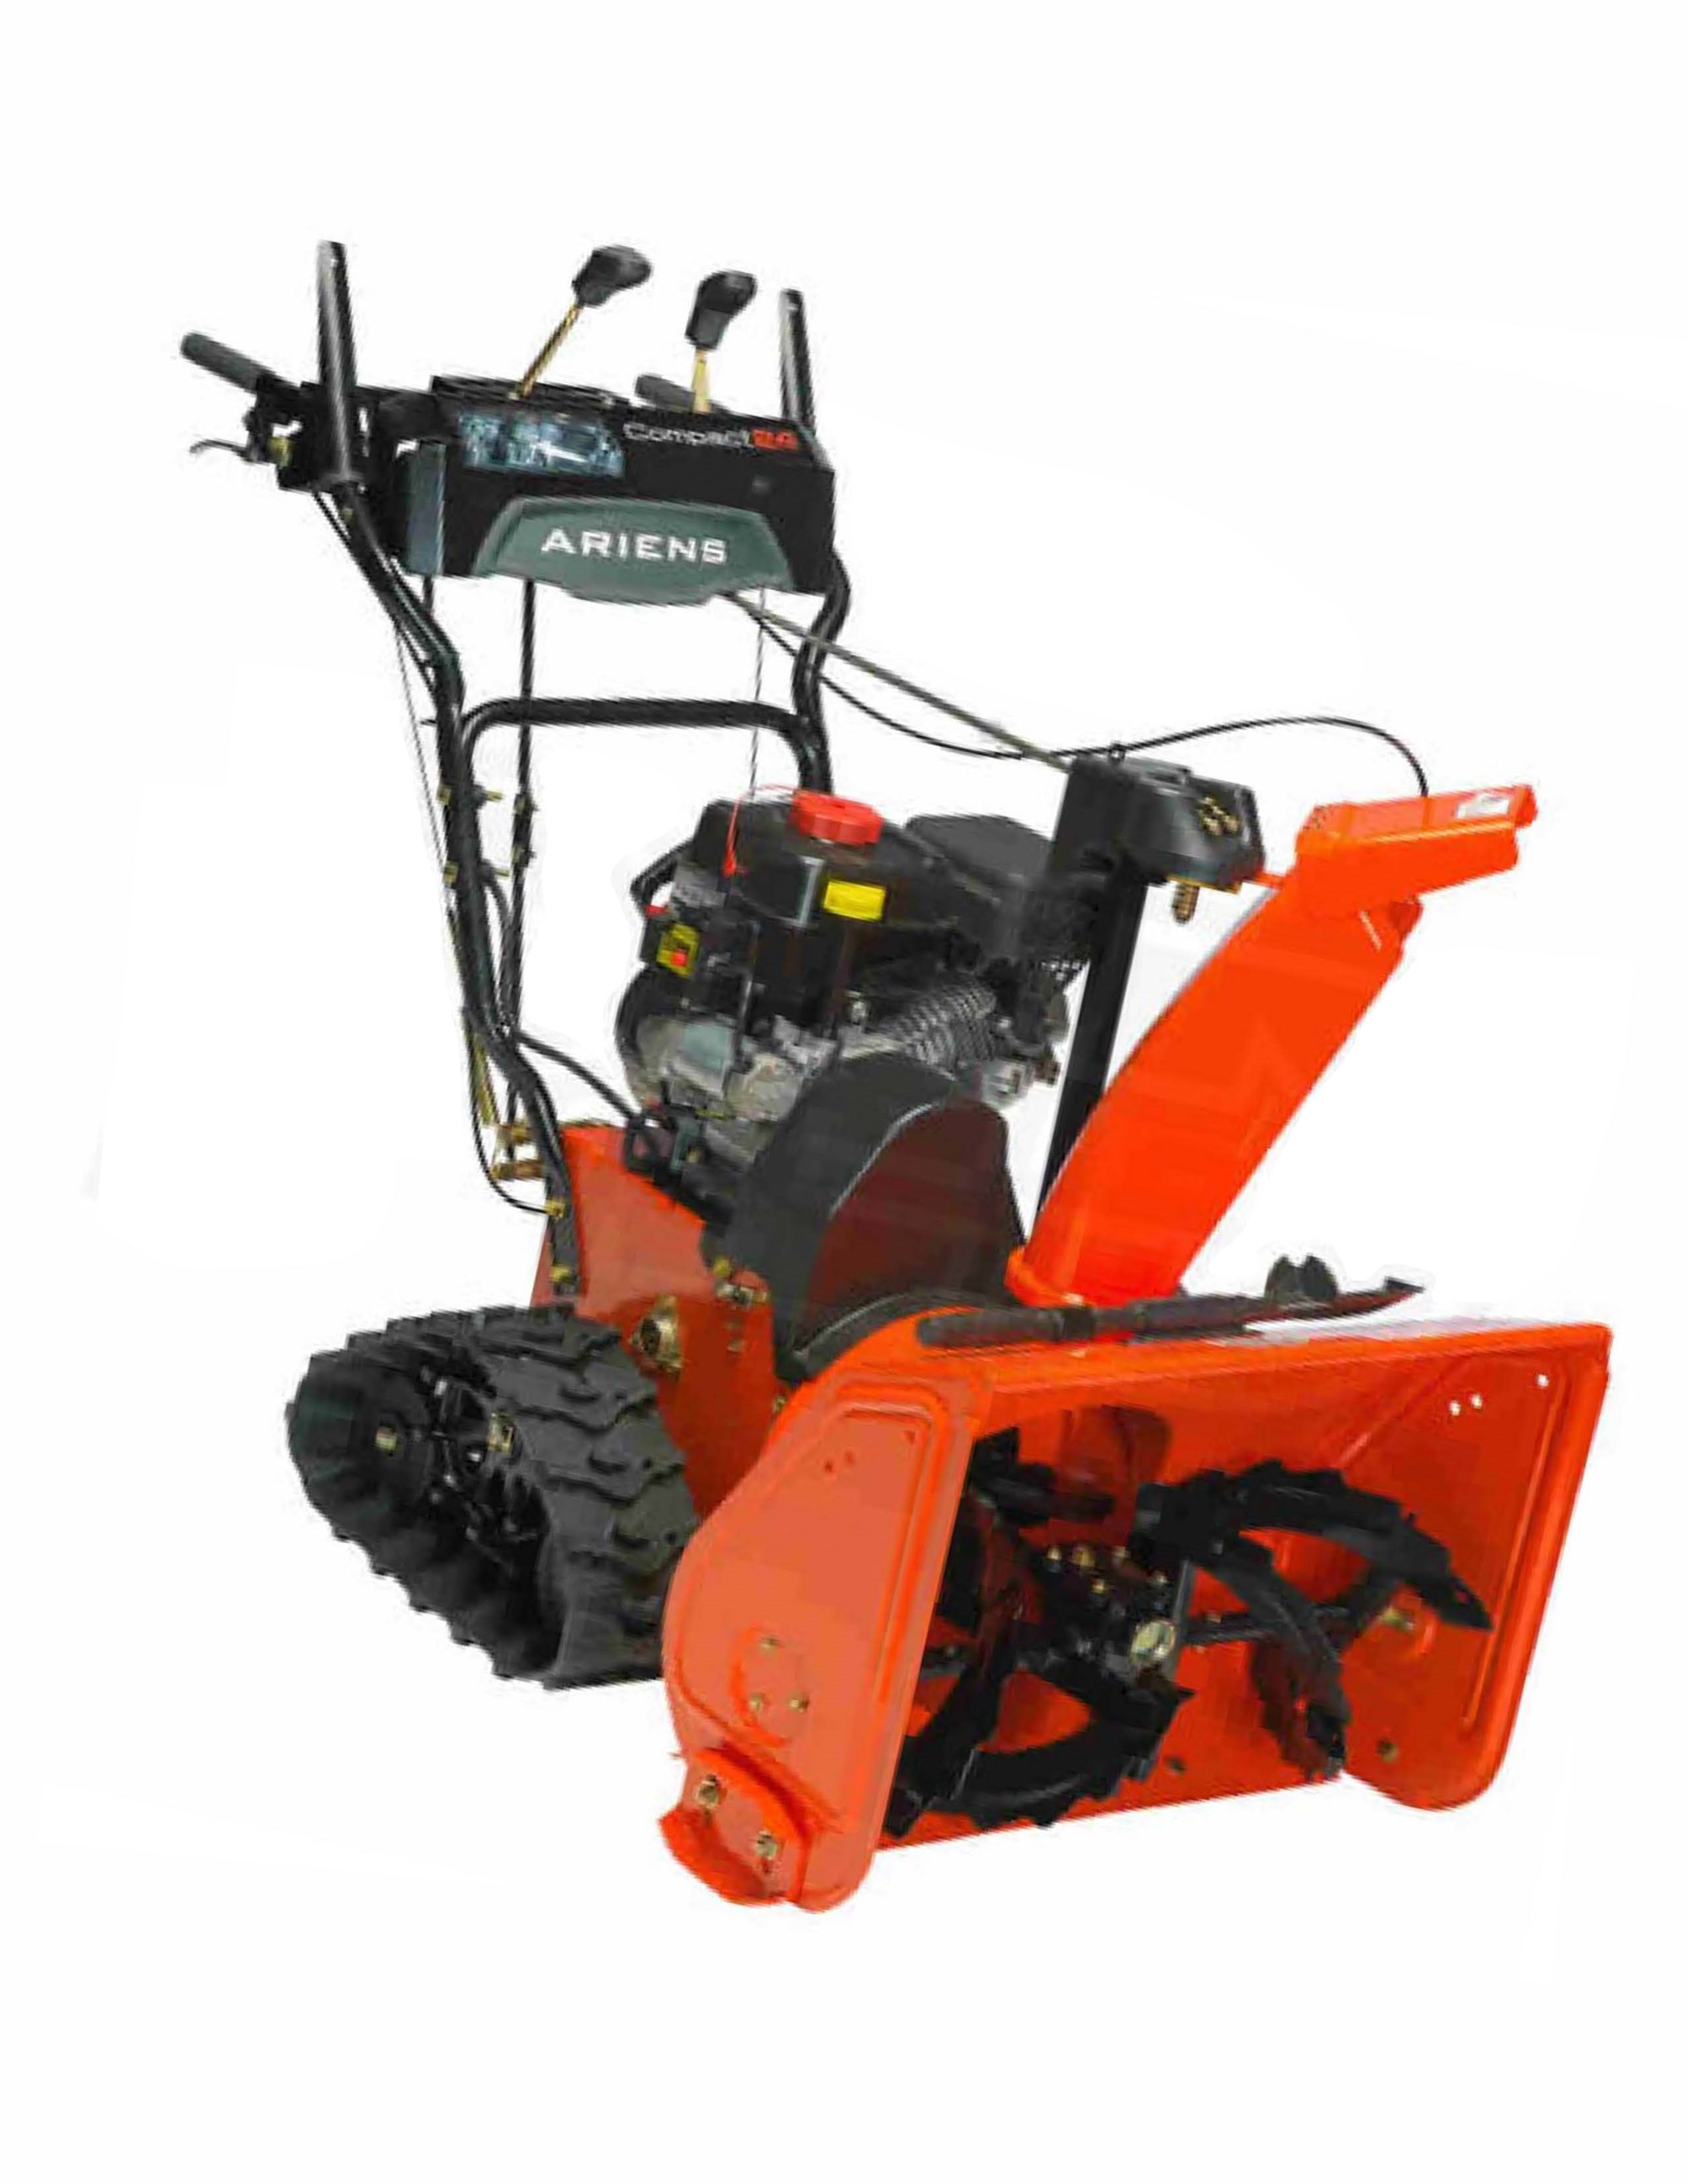 2017 Ariens Snow Blower Review – What's New – Which One Is ...